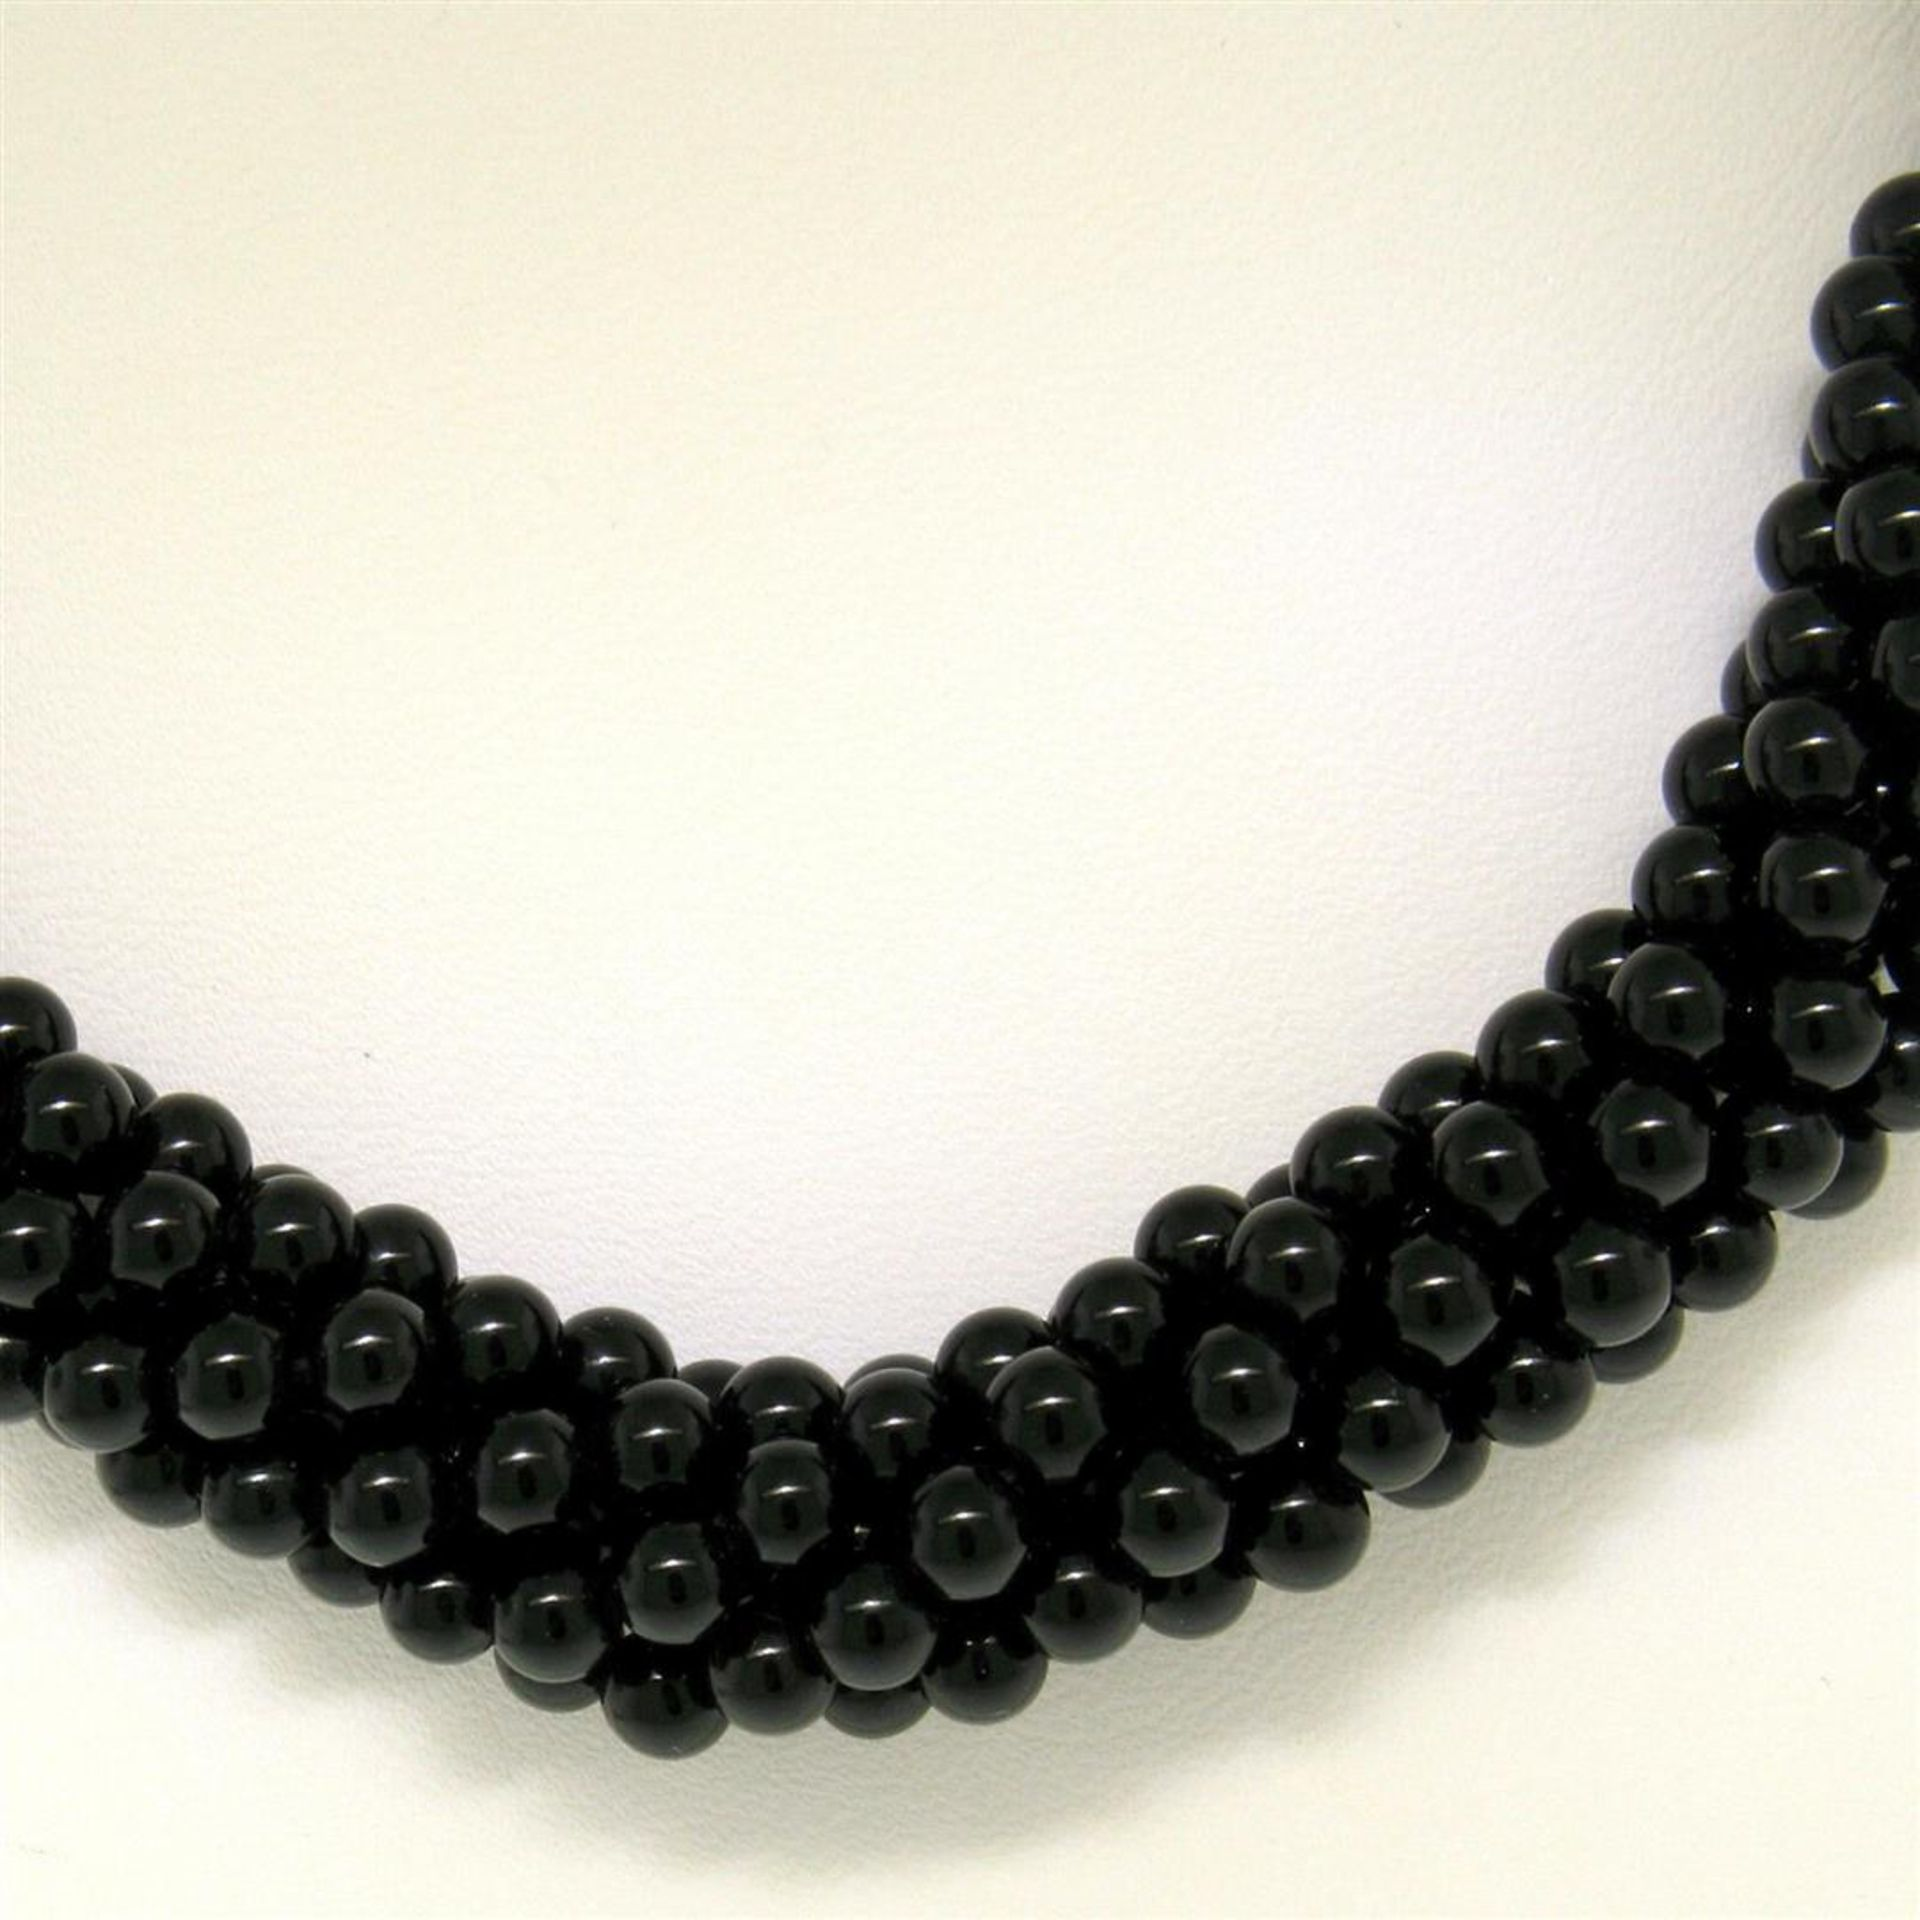 14k Gold Long Multi Strand Black Onyx Necklace w/ Freshwater Pearl & Coral Bead - Image 2 of 4